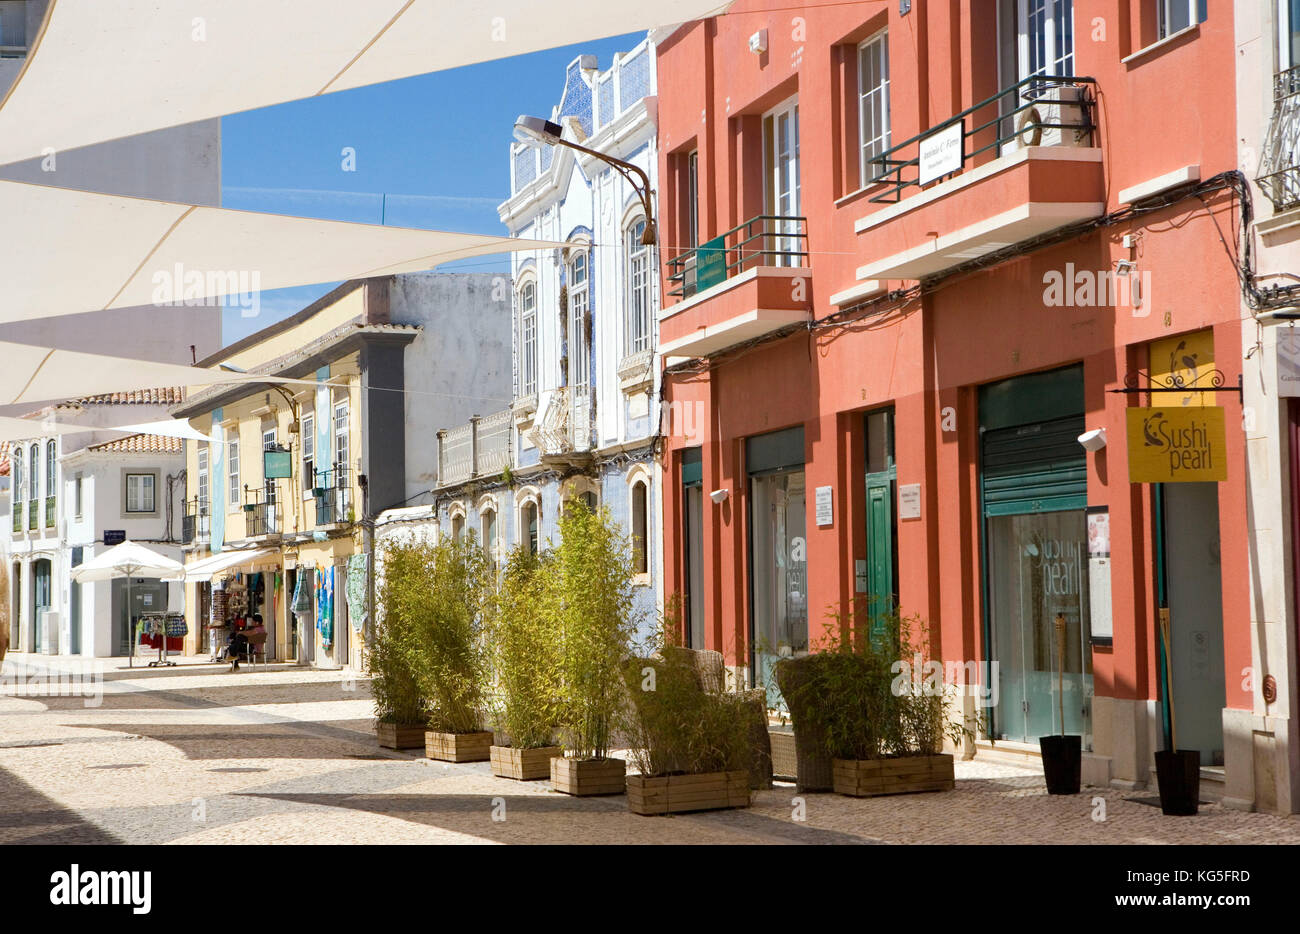 Faro, street in the purchasing fourth with shops, cafés, restaurants - Stock Image